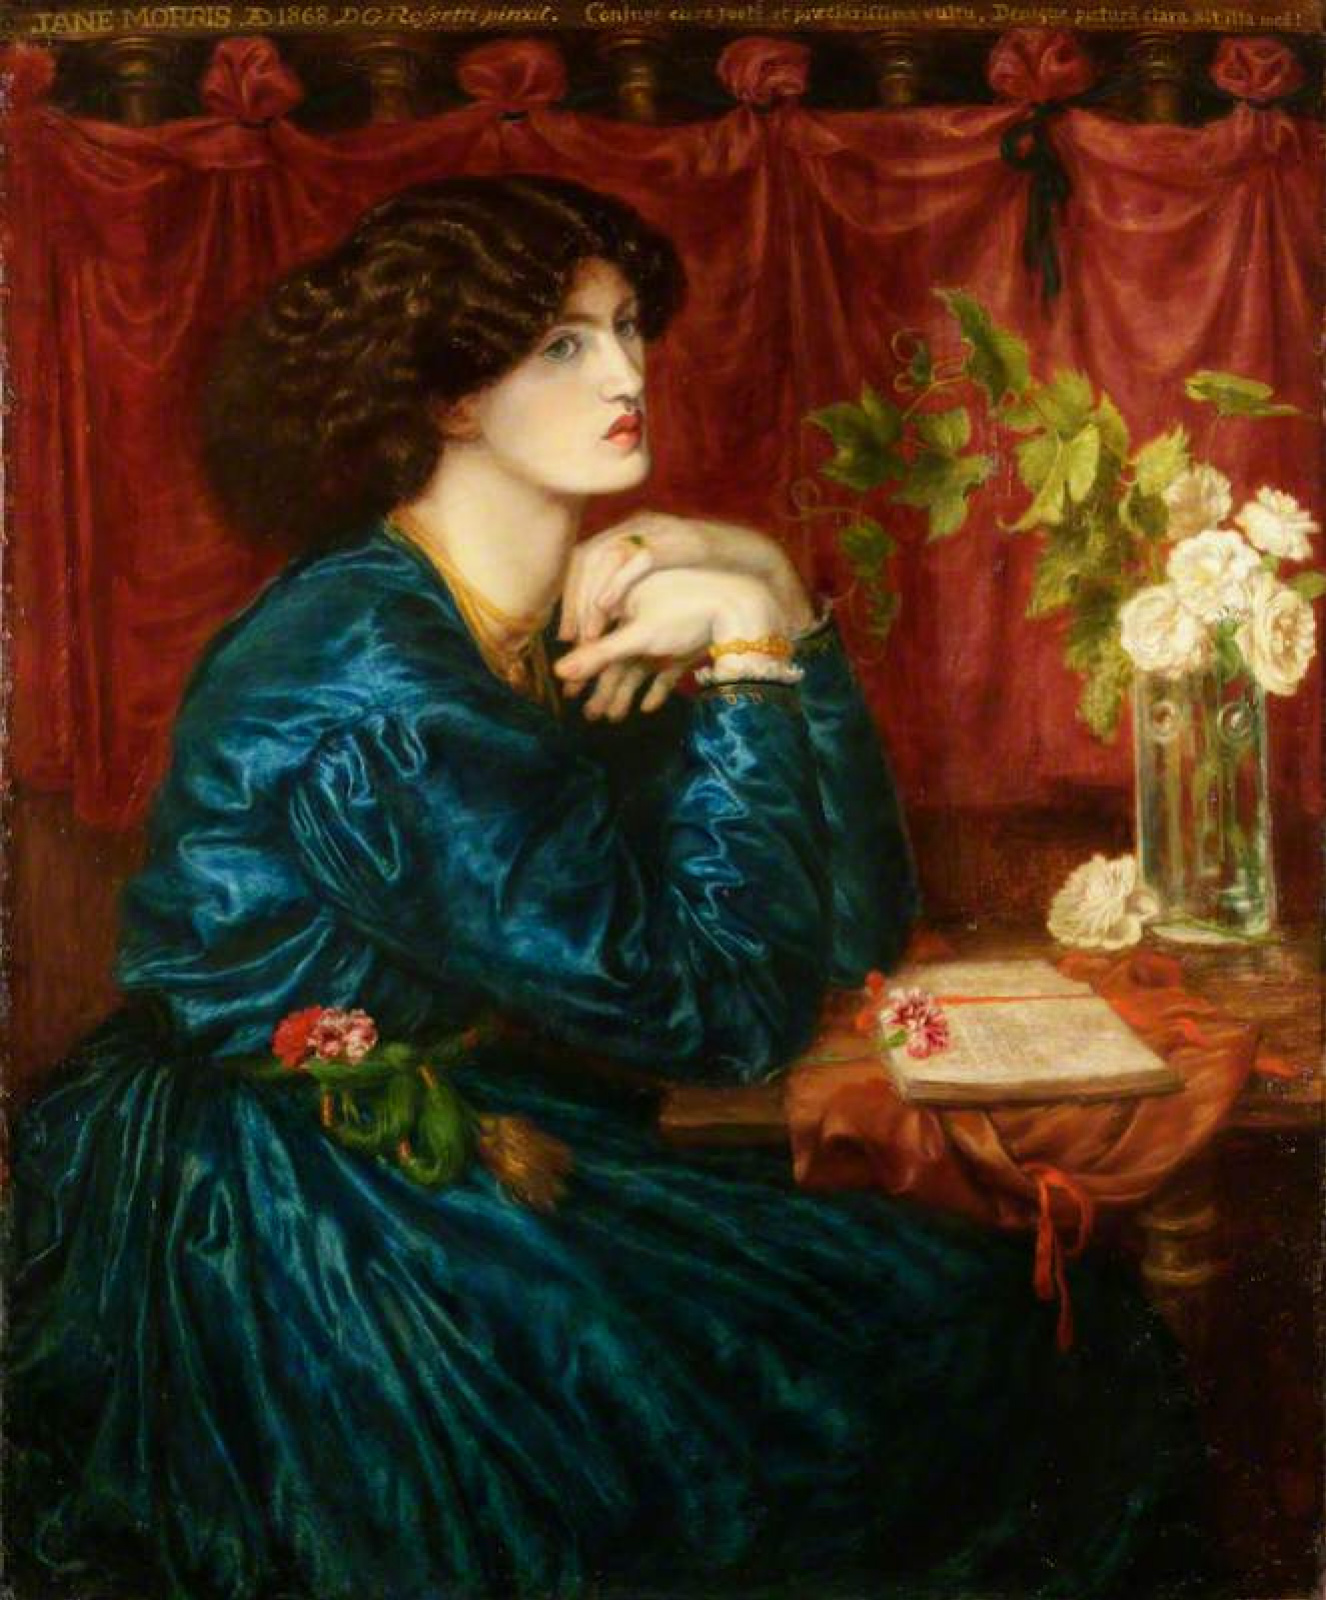 Dante Gabriel Rossetti.  Robe en soie bleue.  Portrait de Jane Morris, Mme William Morris